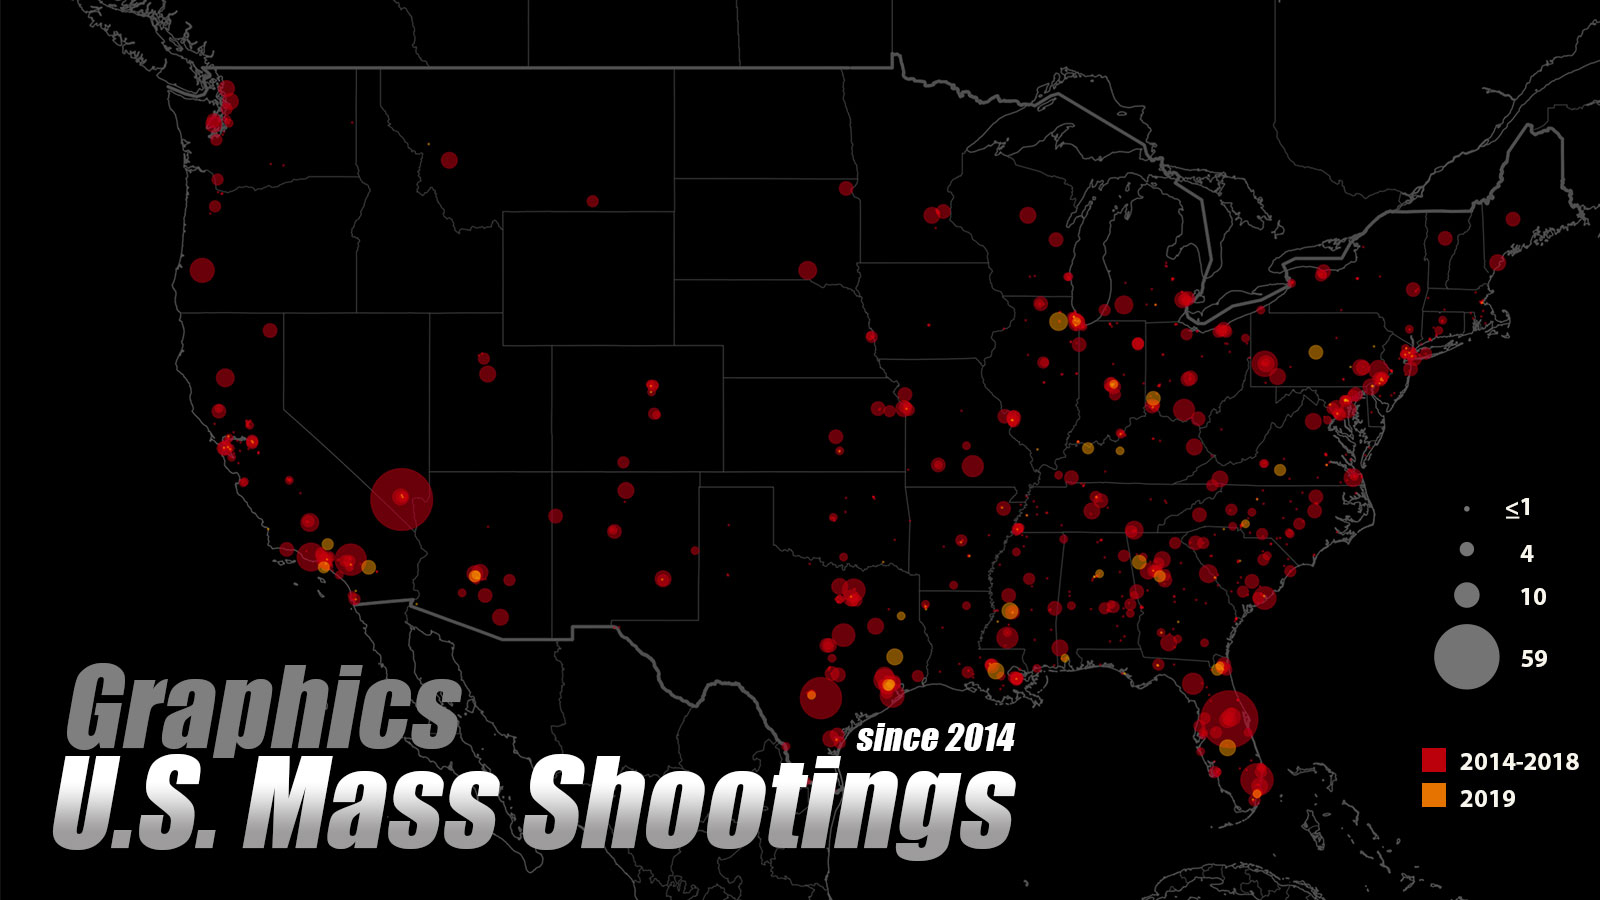 Graphics: US mass shootings in past five years, where and when?